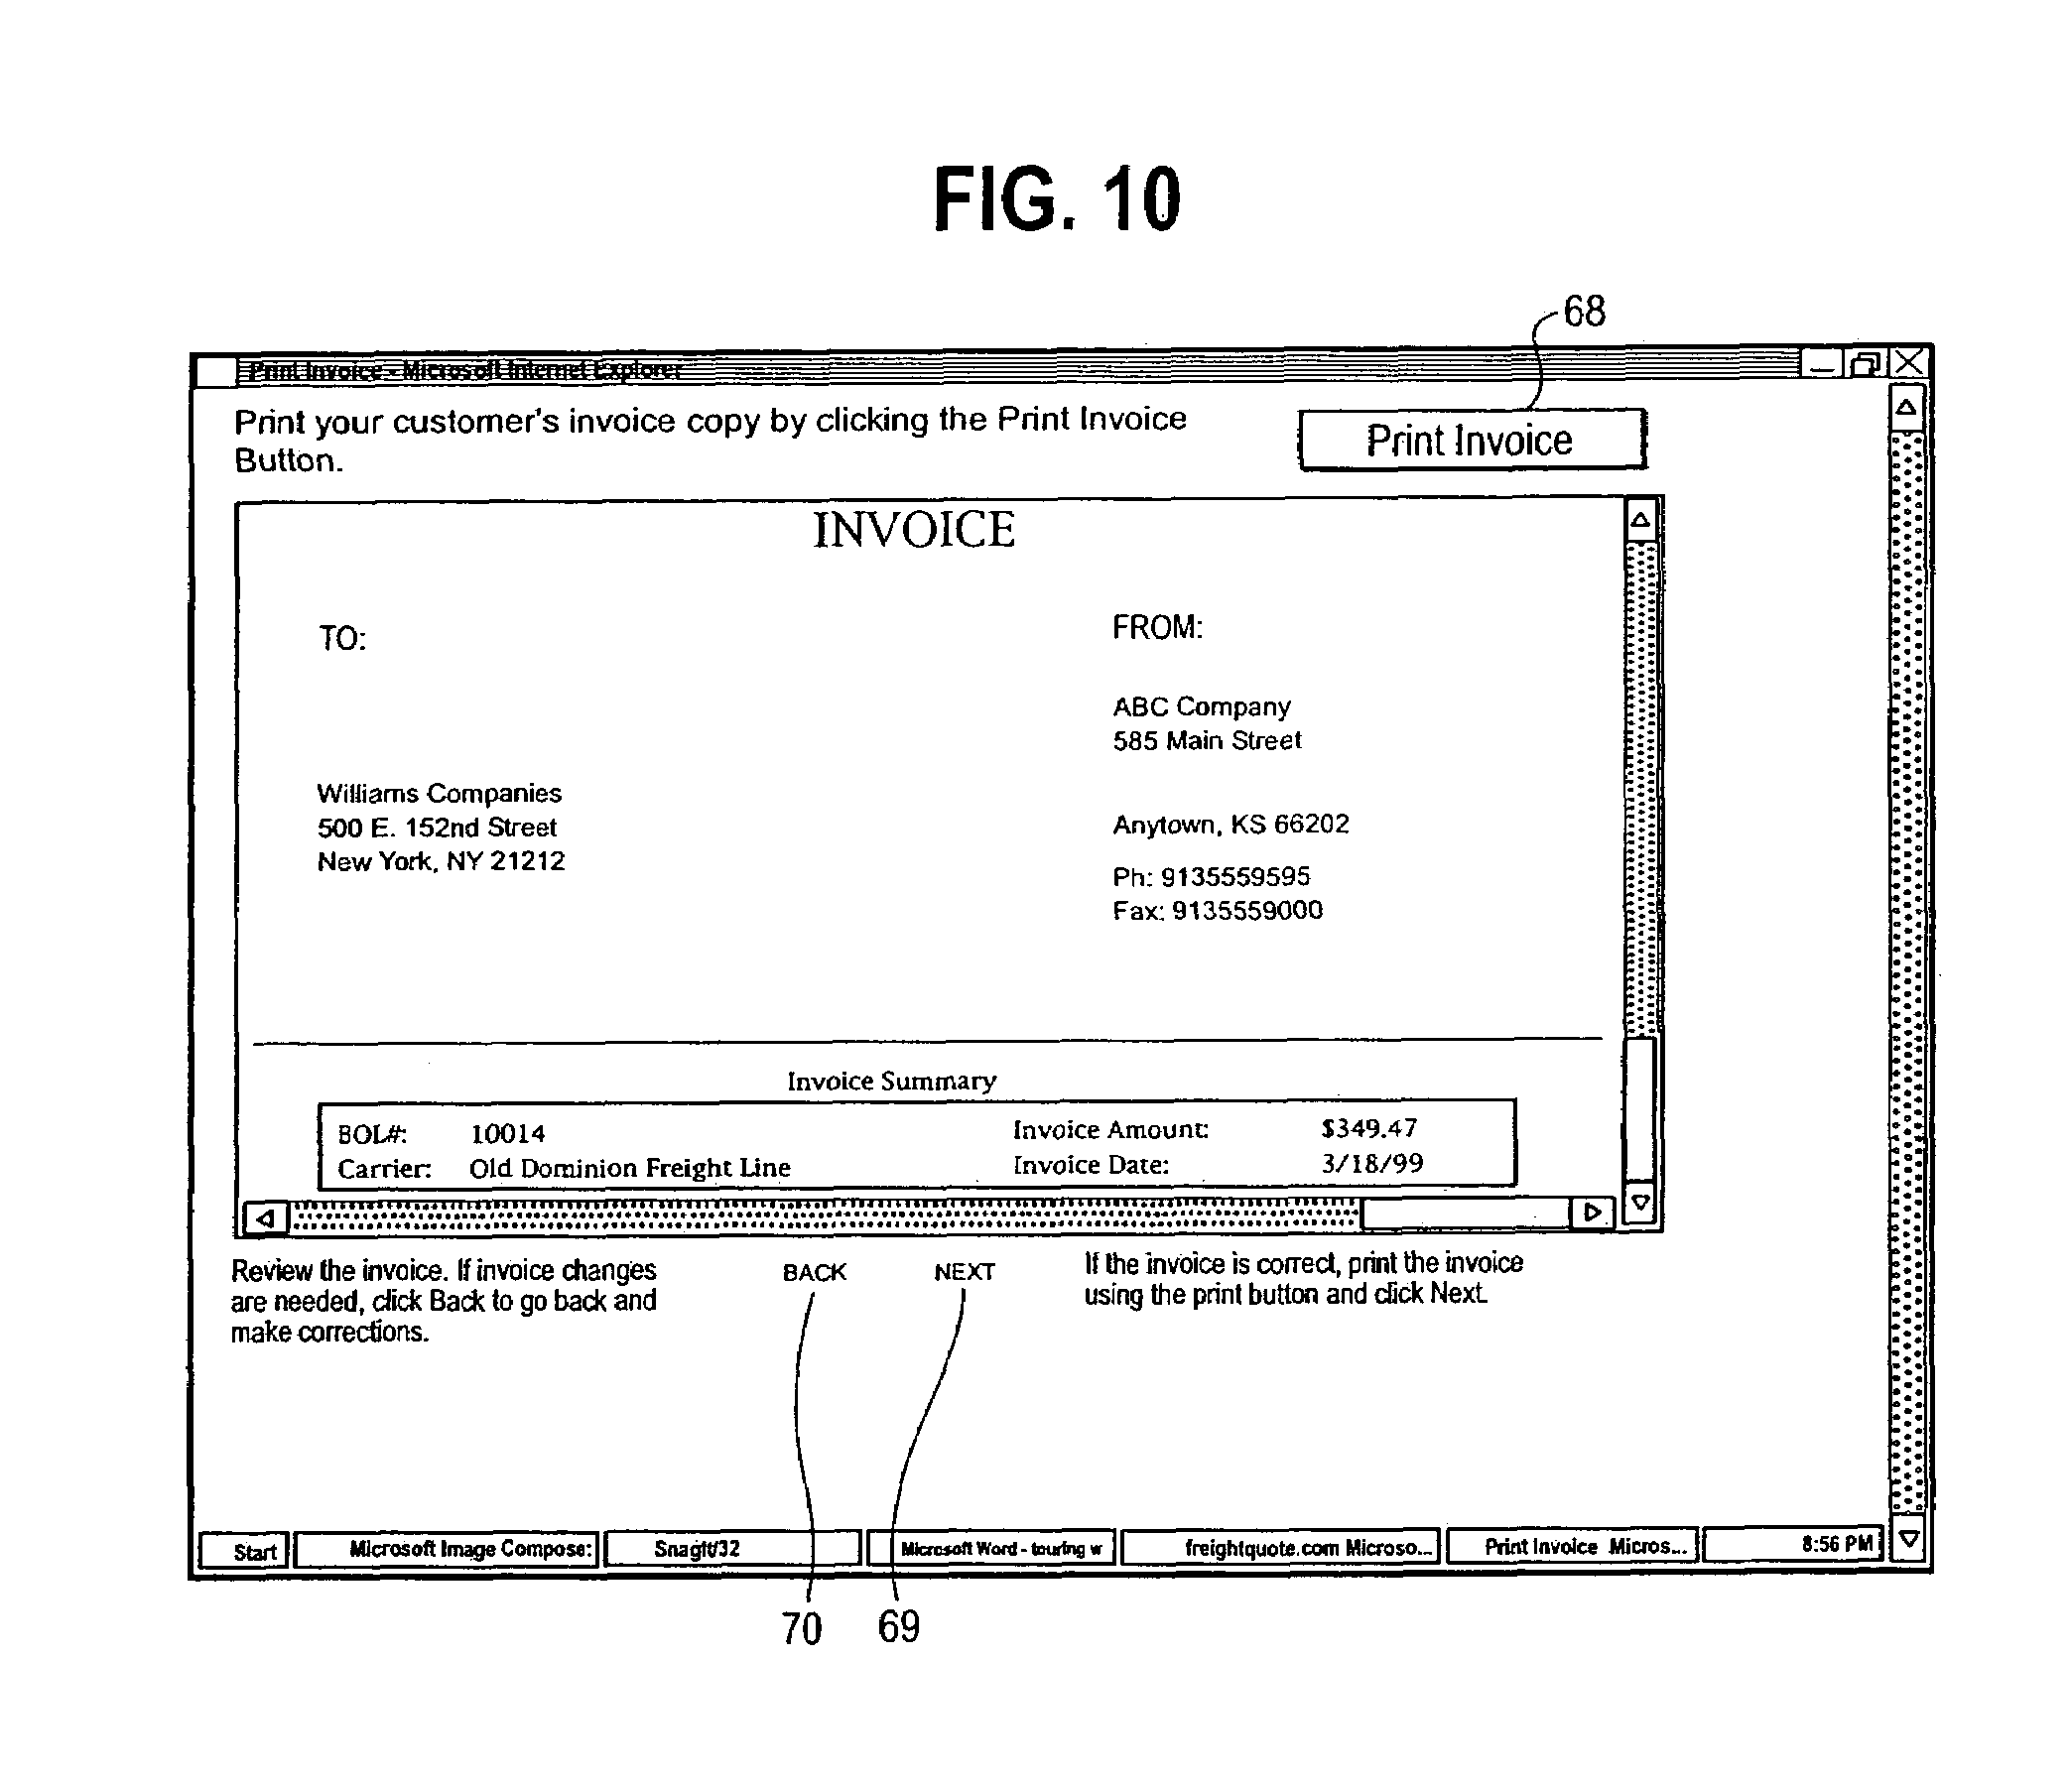 Free Billing Invoice Template Patent Us  System And Method For Marketing Over Computer  Dhl Commercial Invoice Pdf with Downloadable Receipts Patent Drawing Business Invoice Sample Pdf